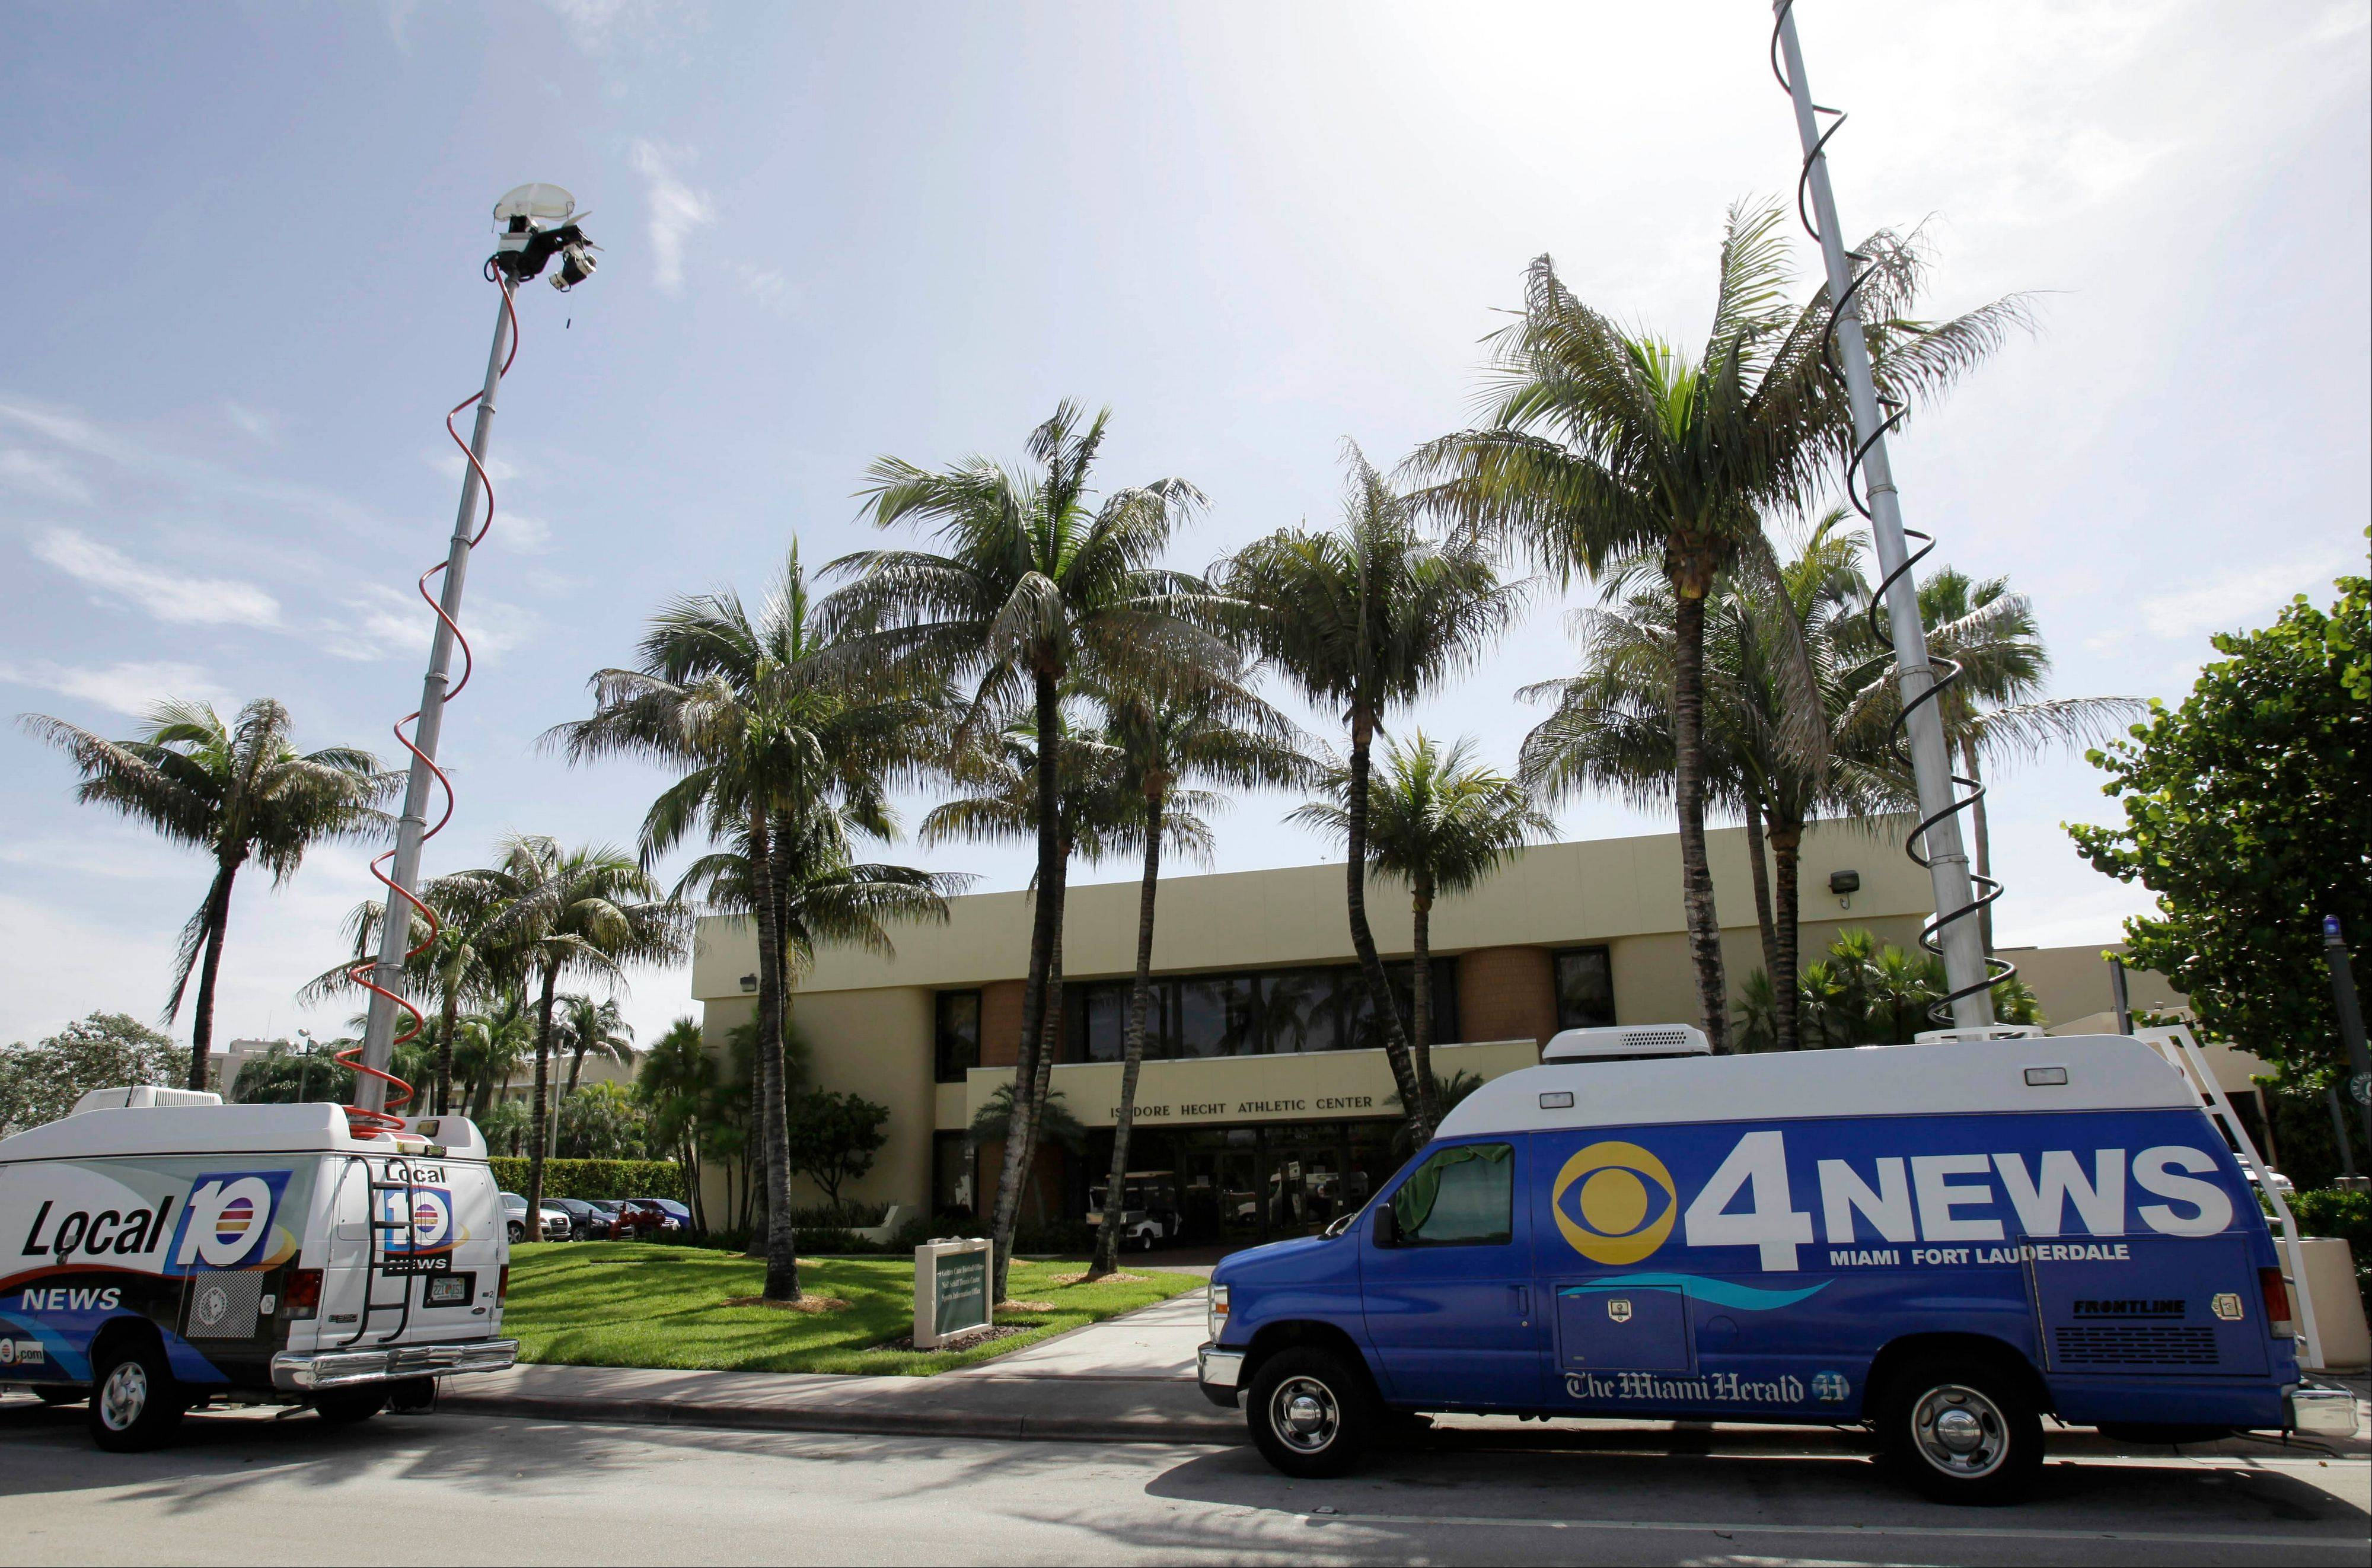 Television news teams flocked to the University of Miami Isadore Hecht Athletic Center in Coral Gables., Fla., Wednesday to get reaction to a Yahoo! Sports report that former booster Nevin Shapiro treated football players with sex parties, nightclub outings, cars and other cash gifts. NCAA investigators also were on campus this week to investigate the claims.